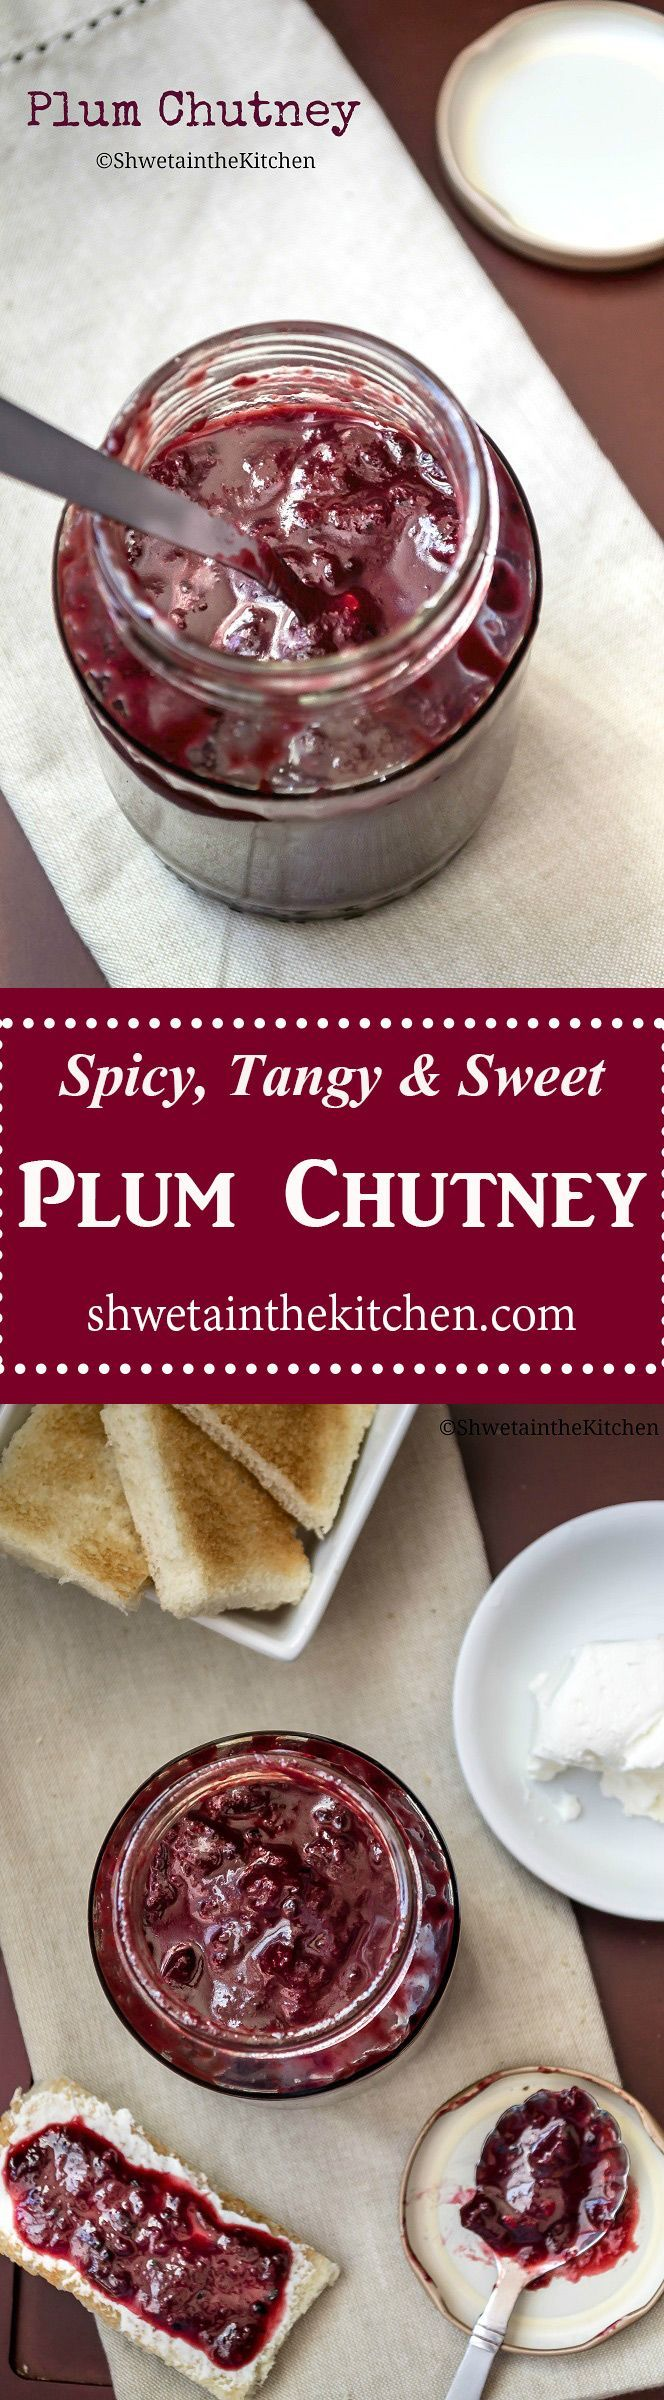 Plum Chutney is an Indian spiced vegan condiment that is spicy, tangy and sweet in taste. Its easy to make, can be stored in refrigerator for weeks and bonus requires no canning or preservatives. Use it as a condiment, spread, dip